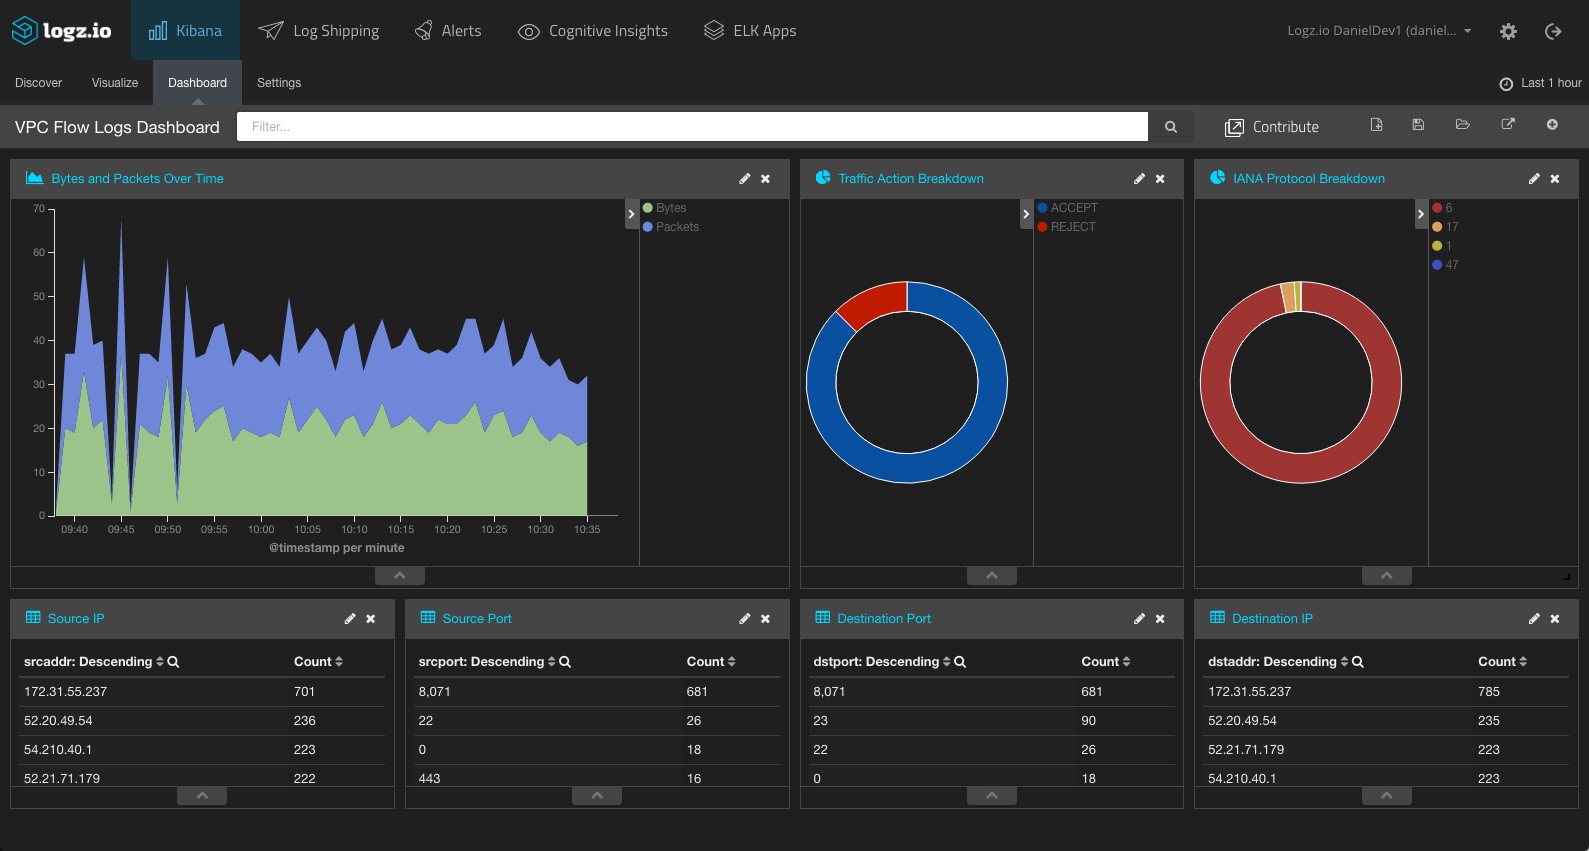 vpc flow log monitoring dashboard